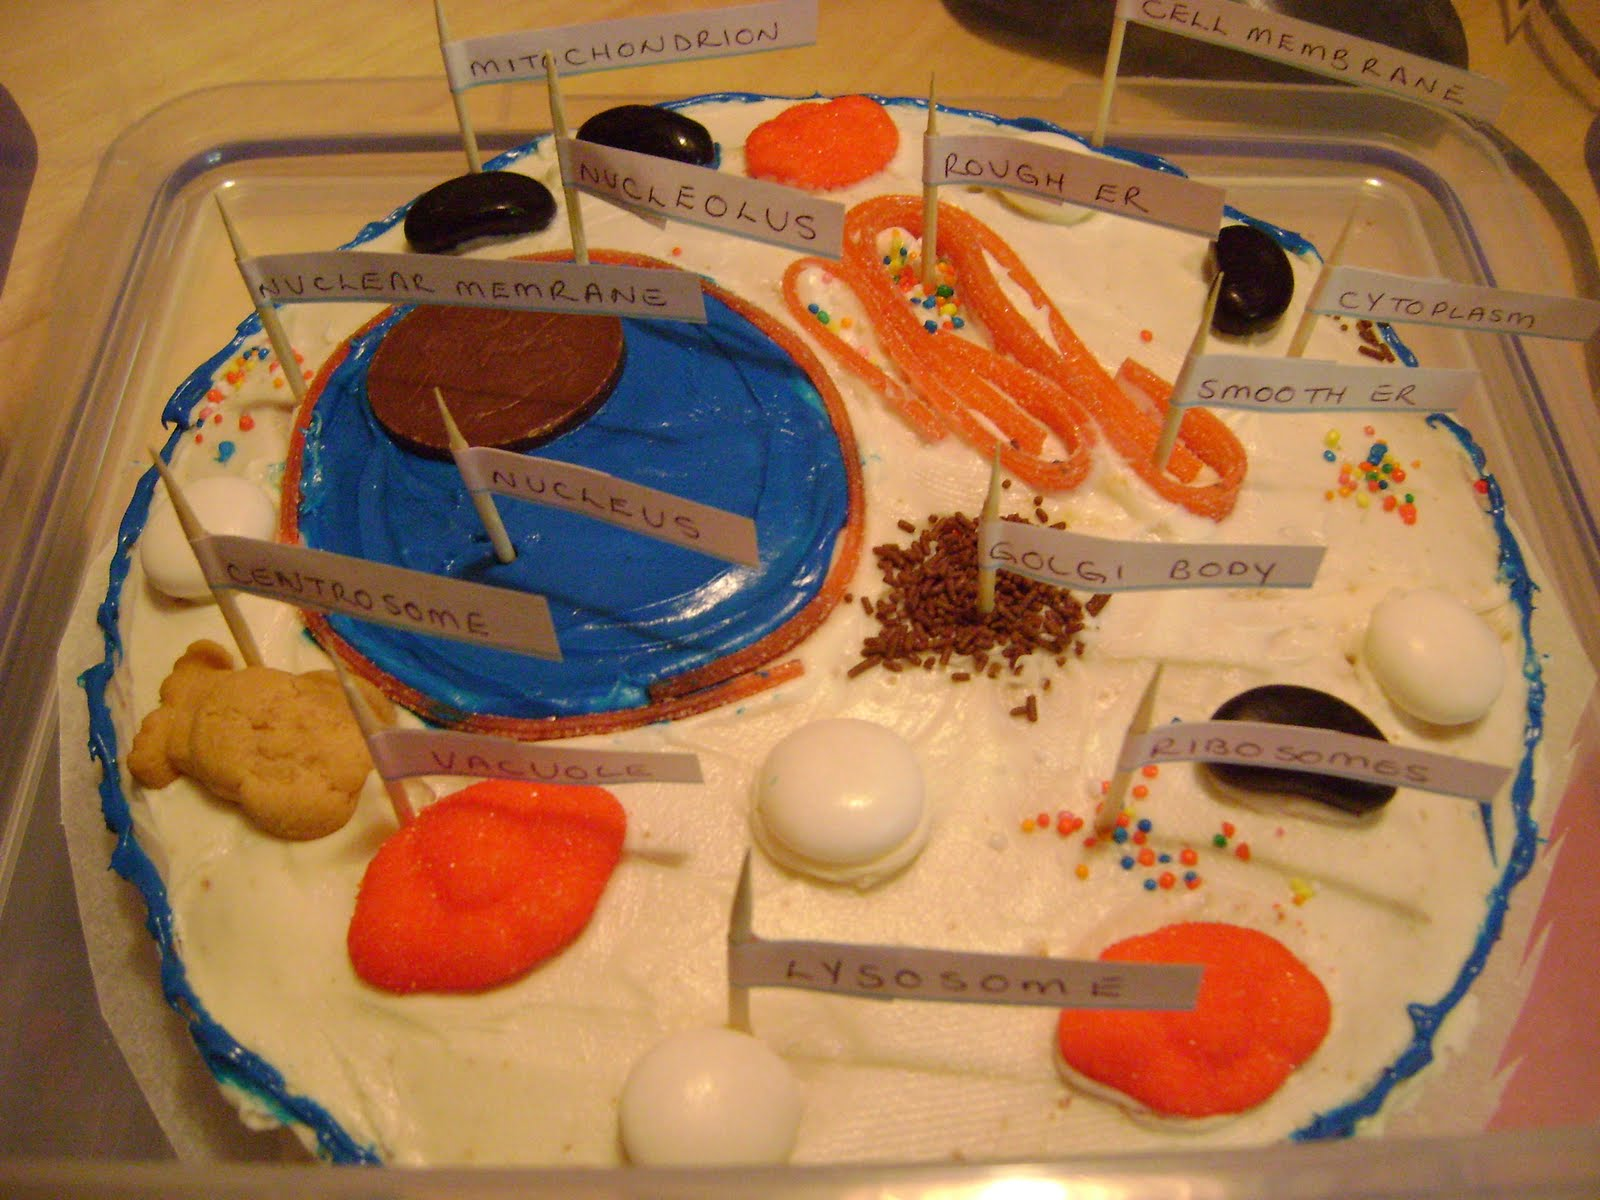 Edible Plant Cell Project Ideas http://www.outofours.com/2011_06_01_archive.html